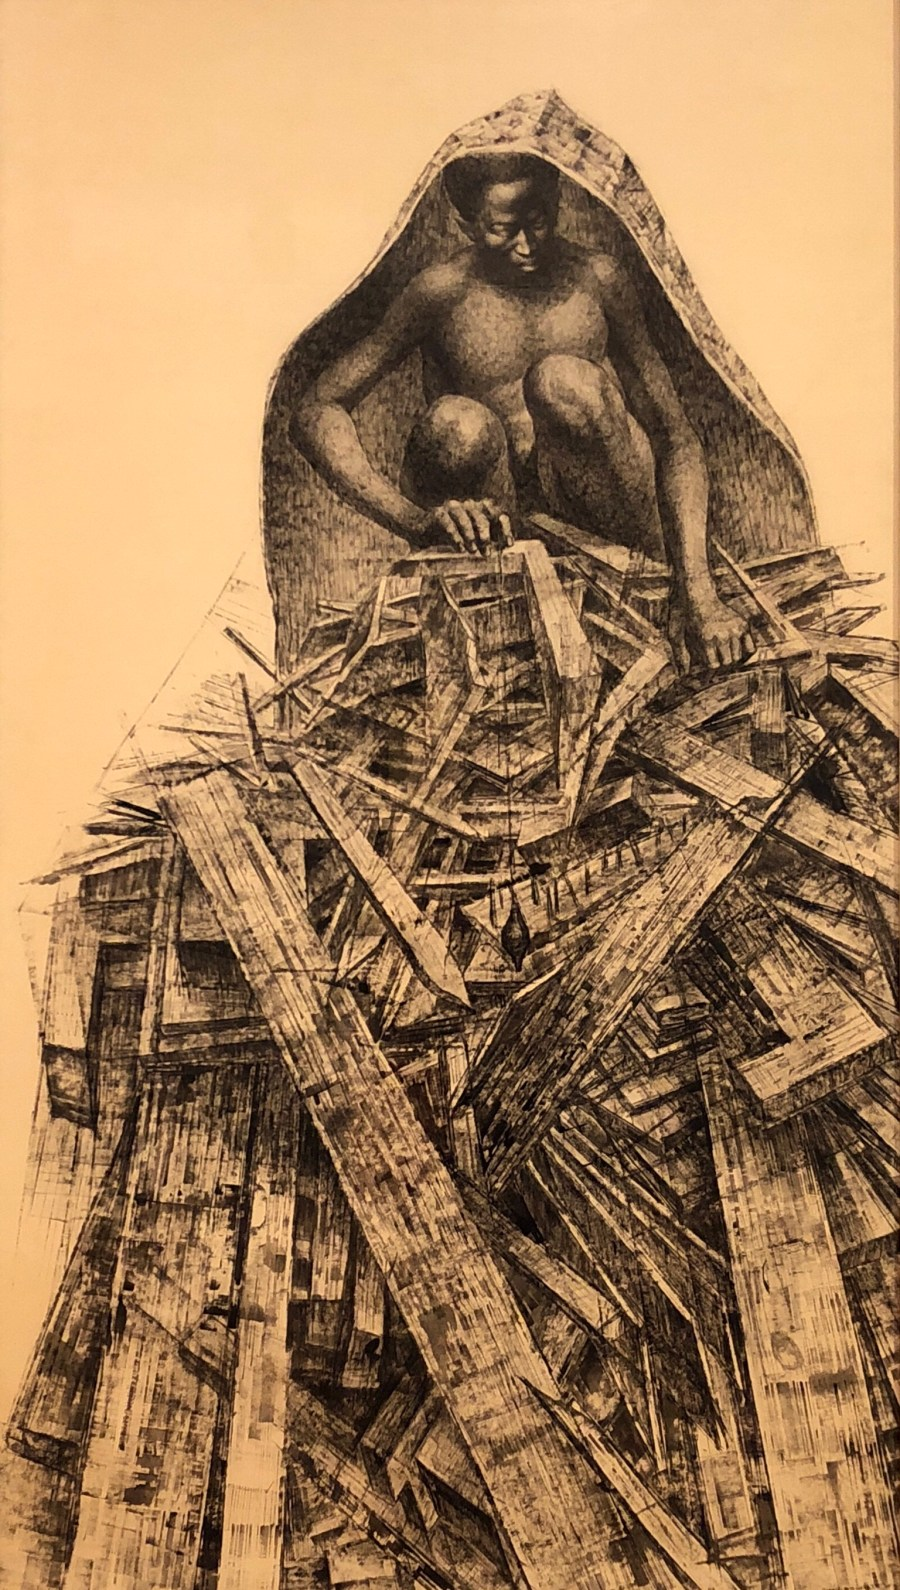 Birmingham Totem. 1963 church bombing by Charles White